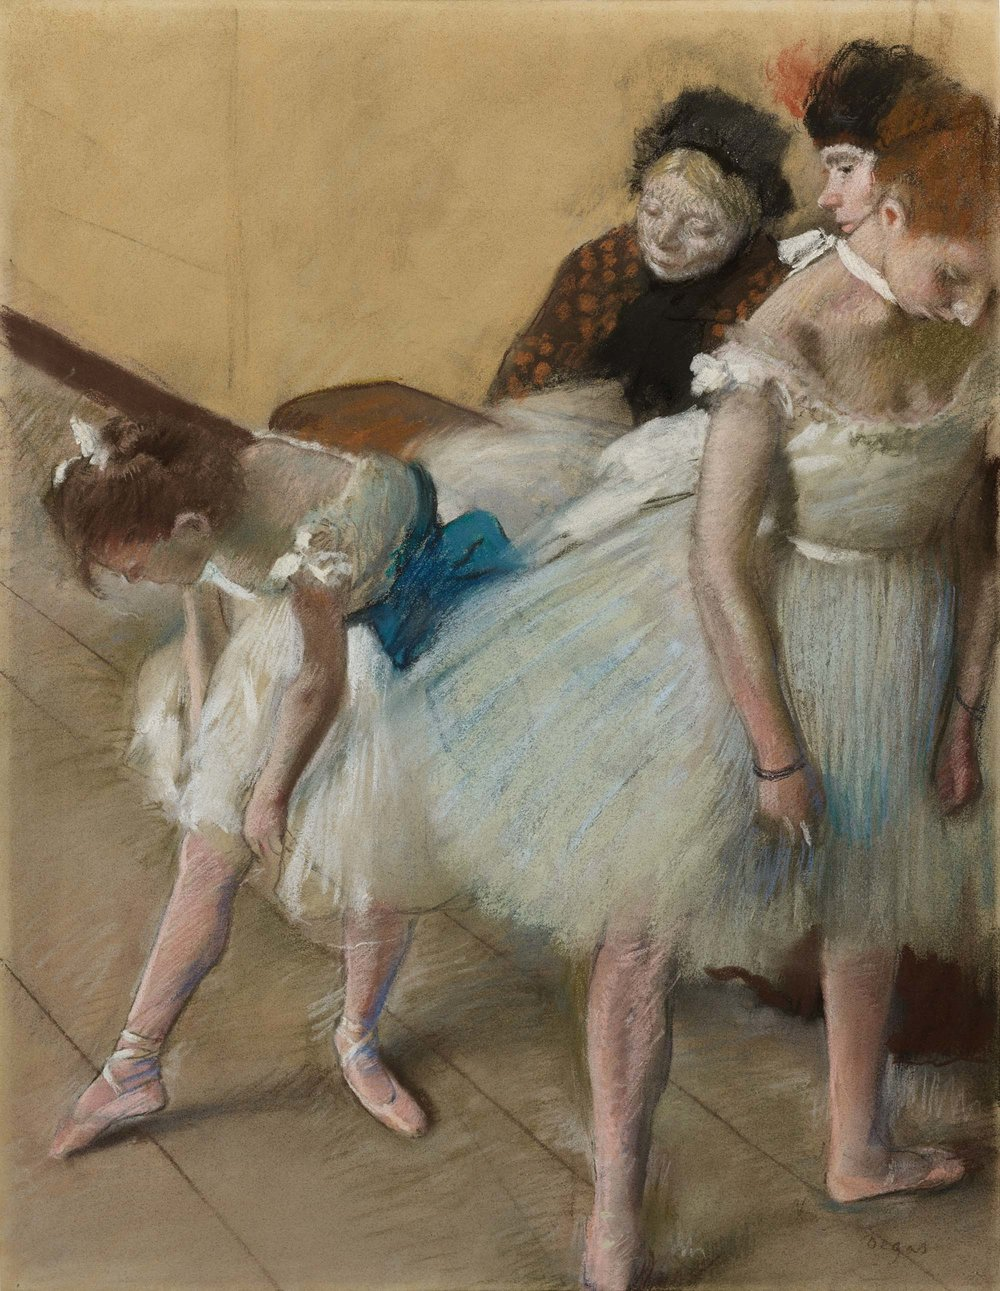 Degas-Dance-Examination1880-Denver-Art-Museum.jpg